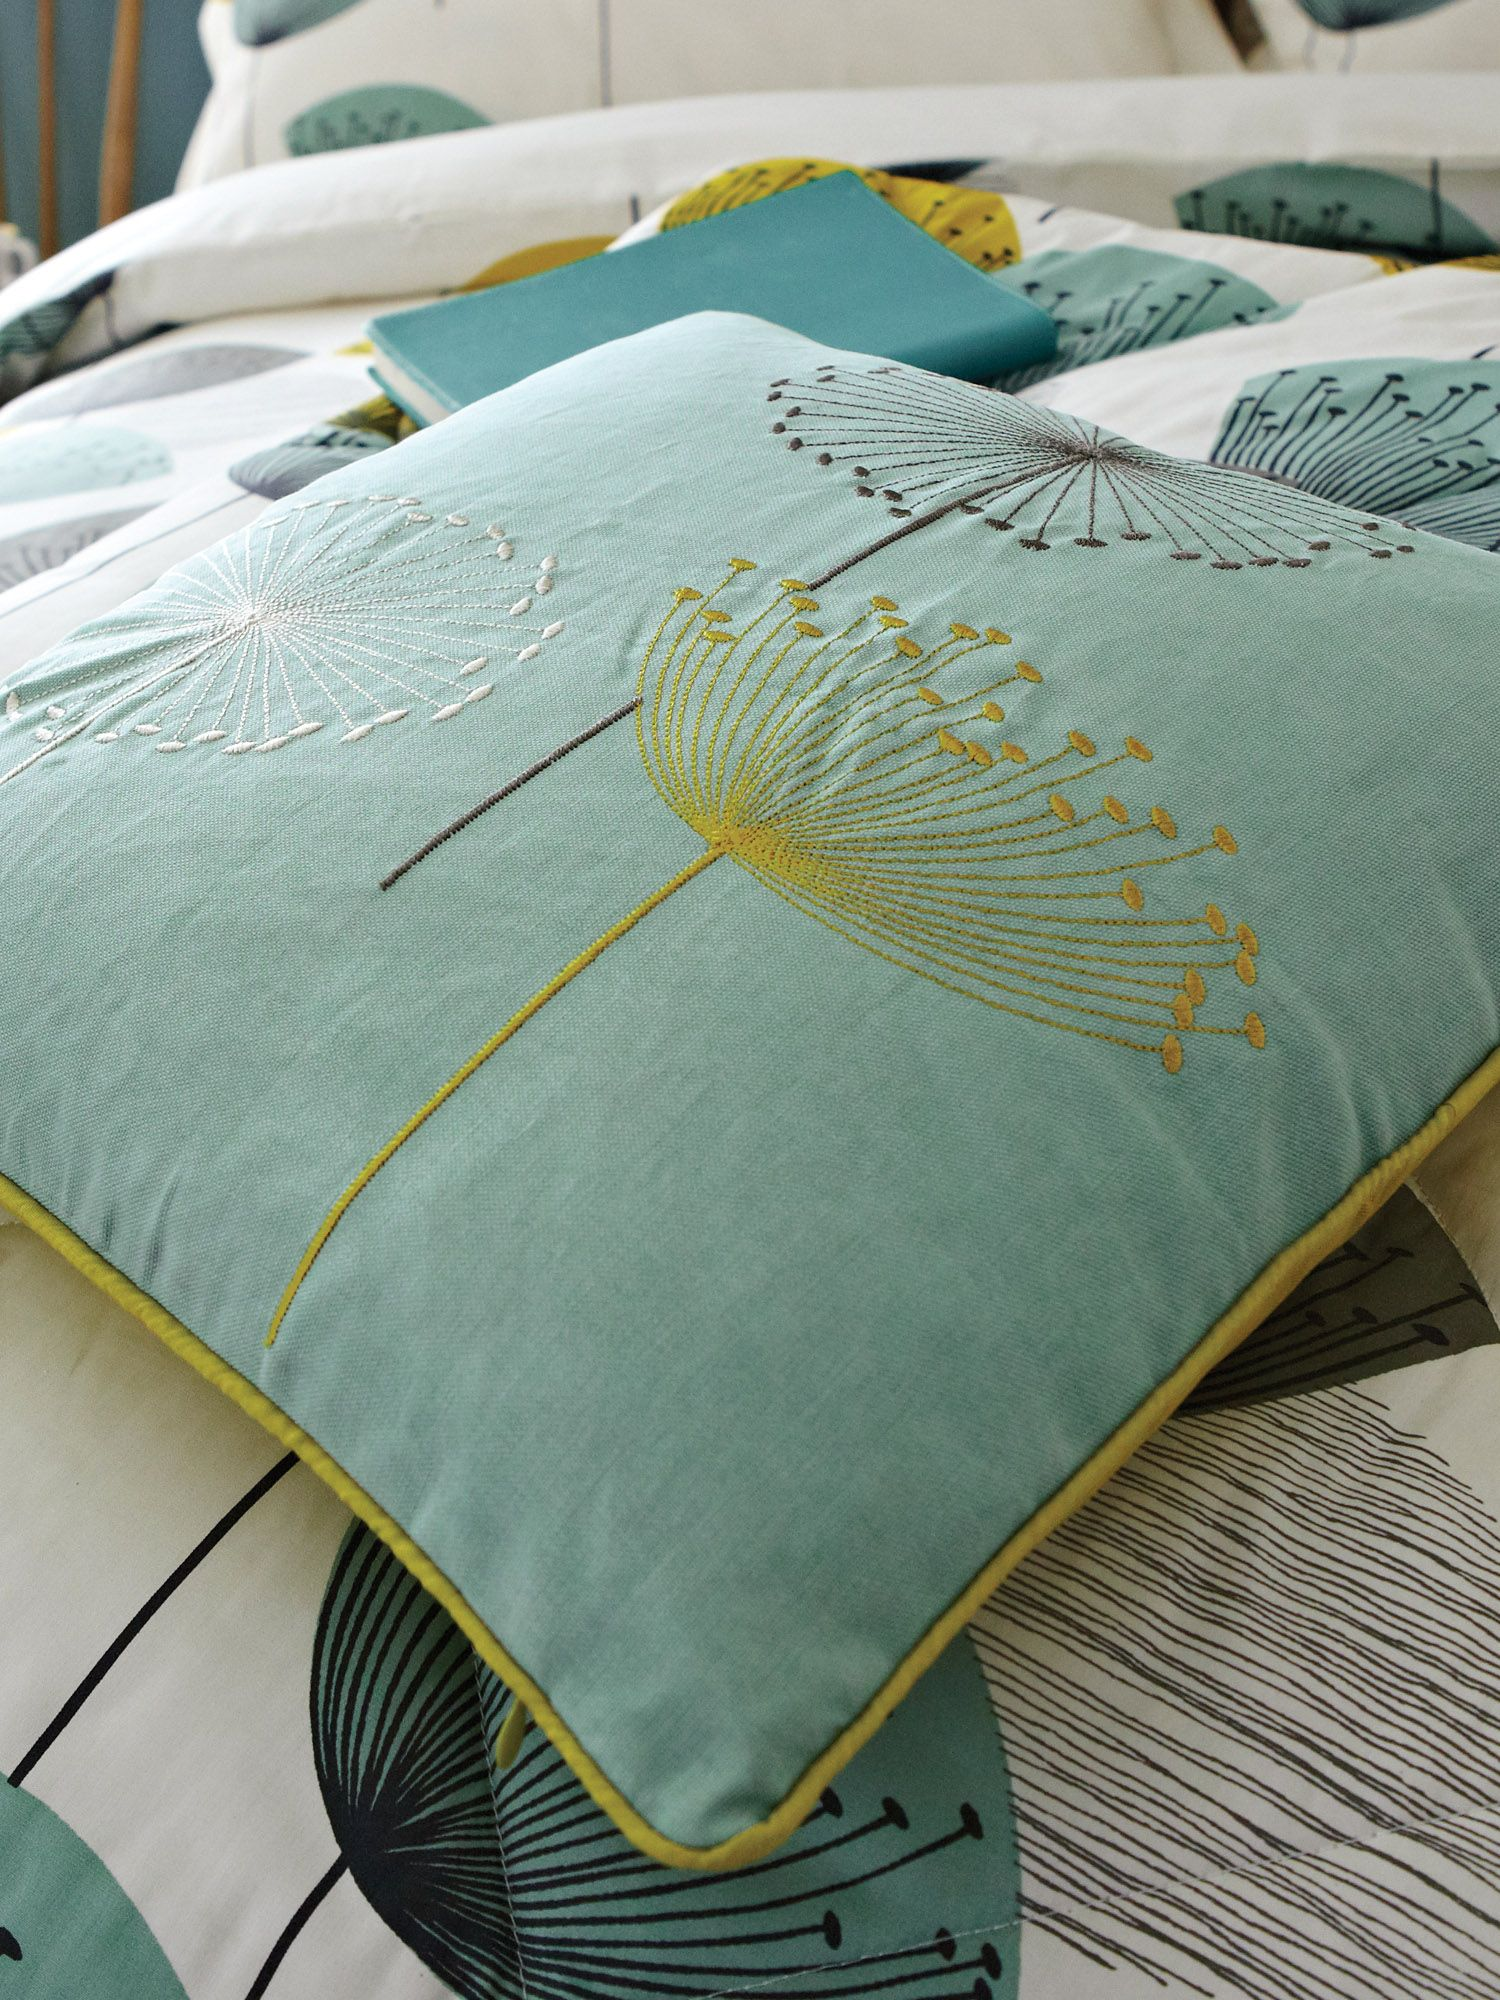 Dandelion clocks chaffinch cushions 40 x 40 cm